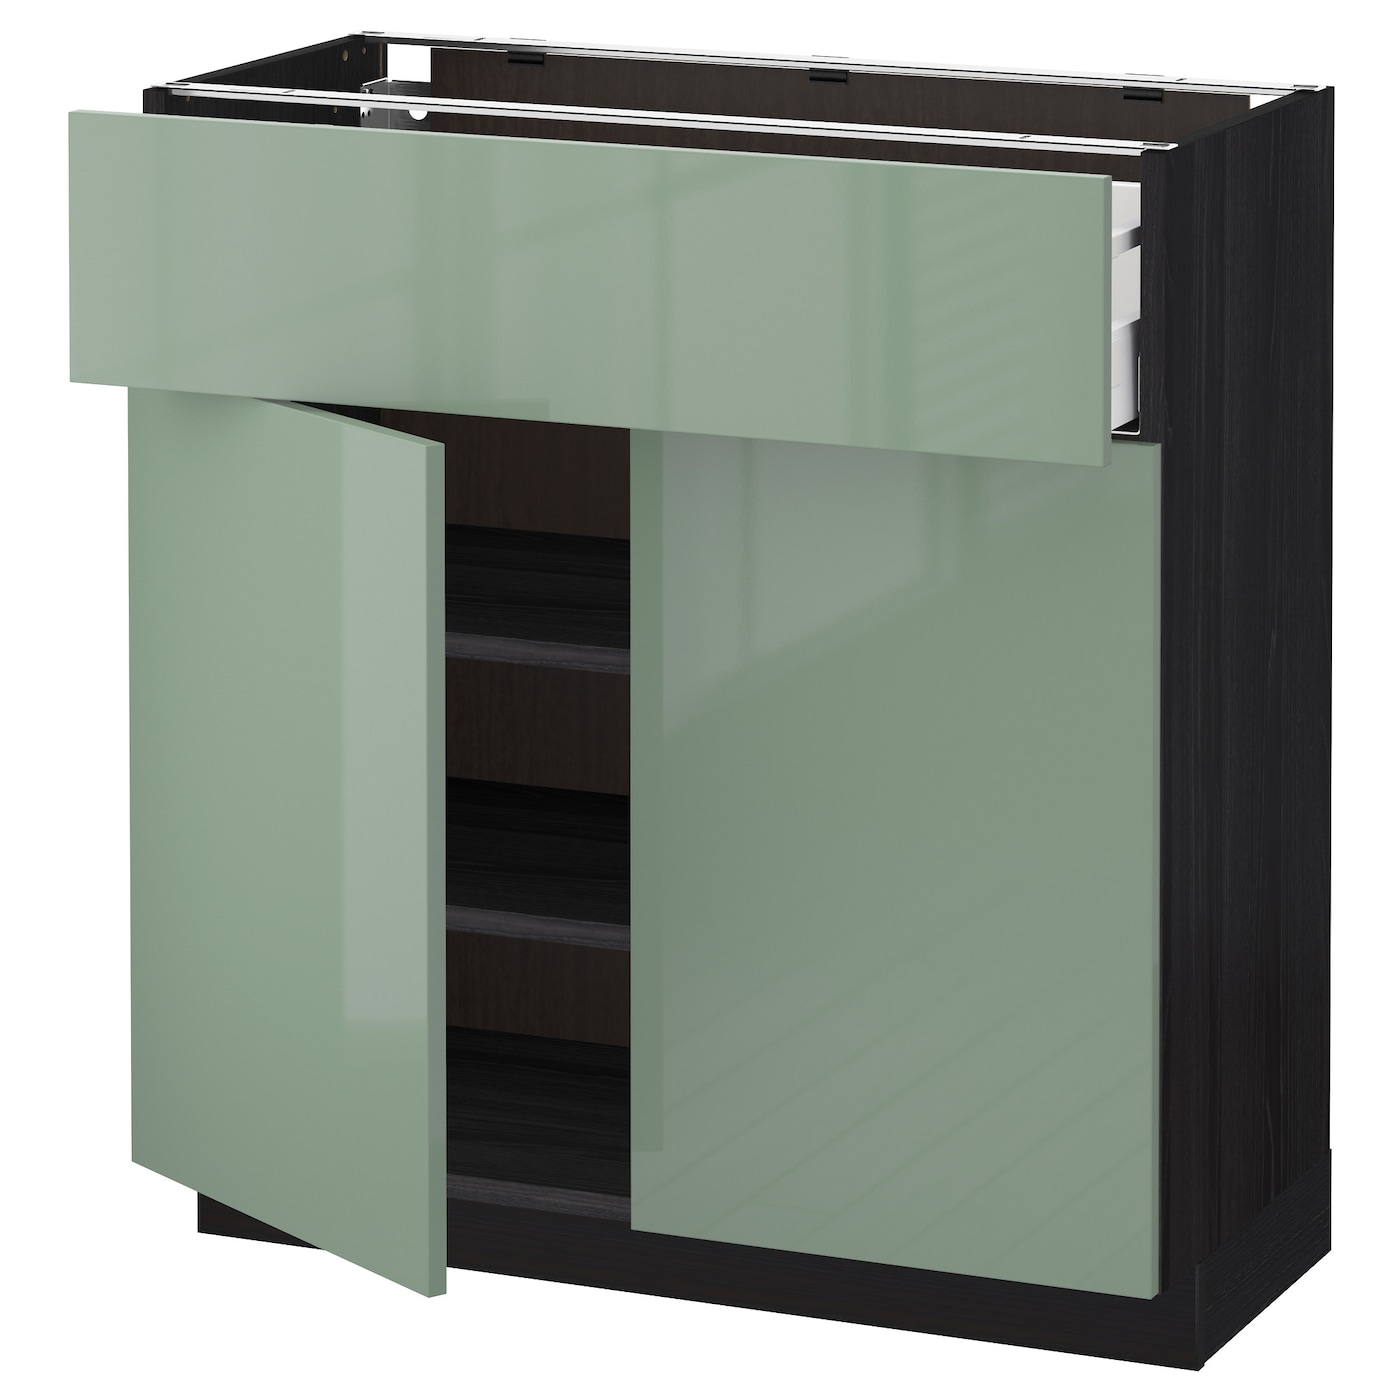 Kitchen Cabinet Connectors: METOD/MAXIMERA Base Cabinet With Drawer/2 Doors Black